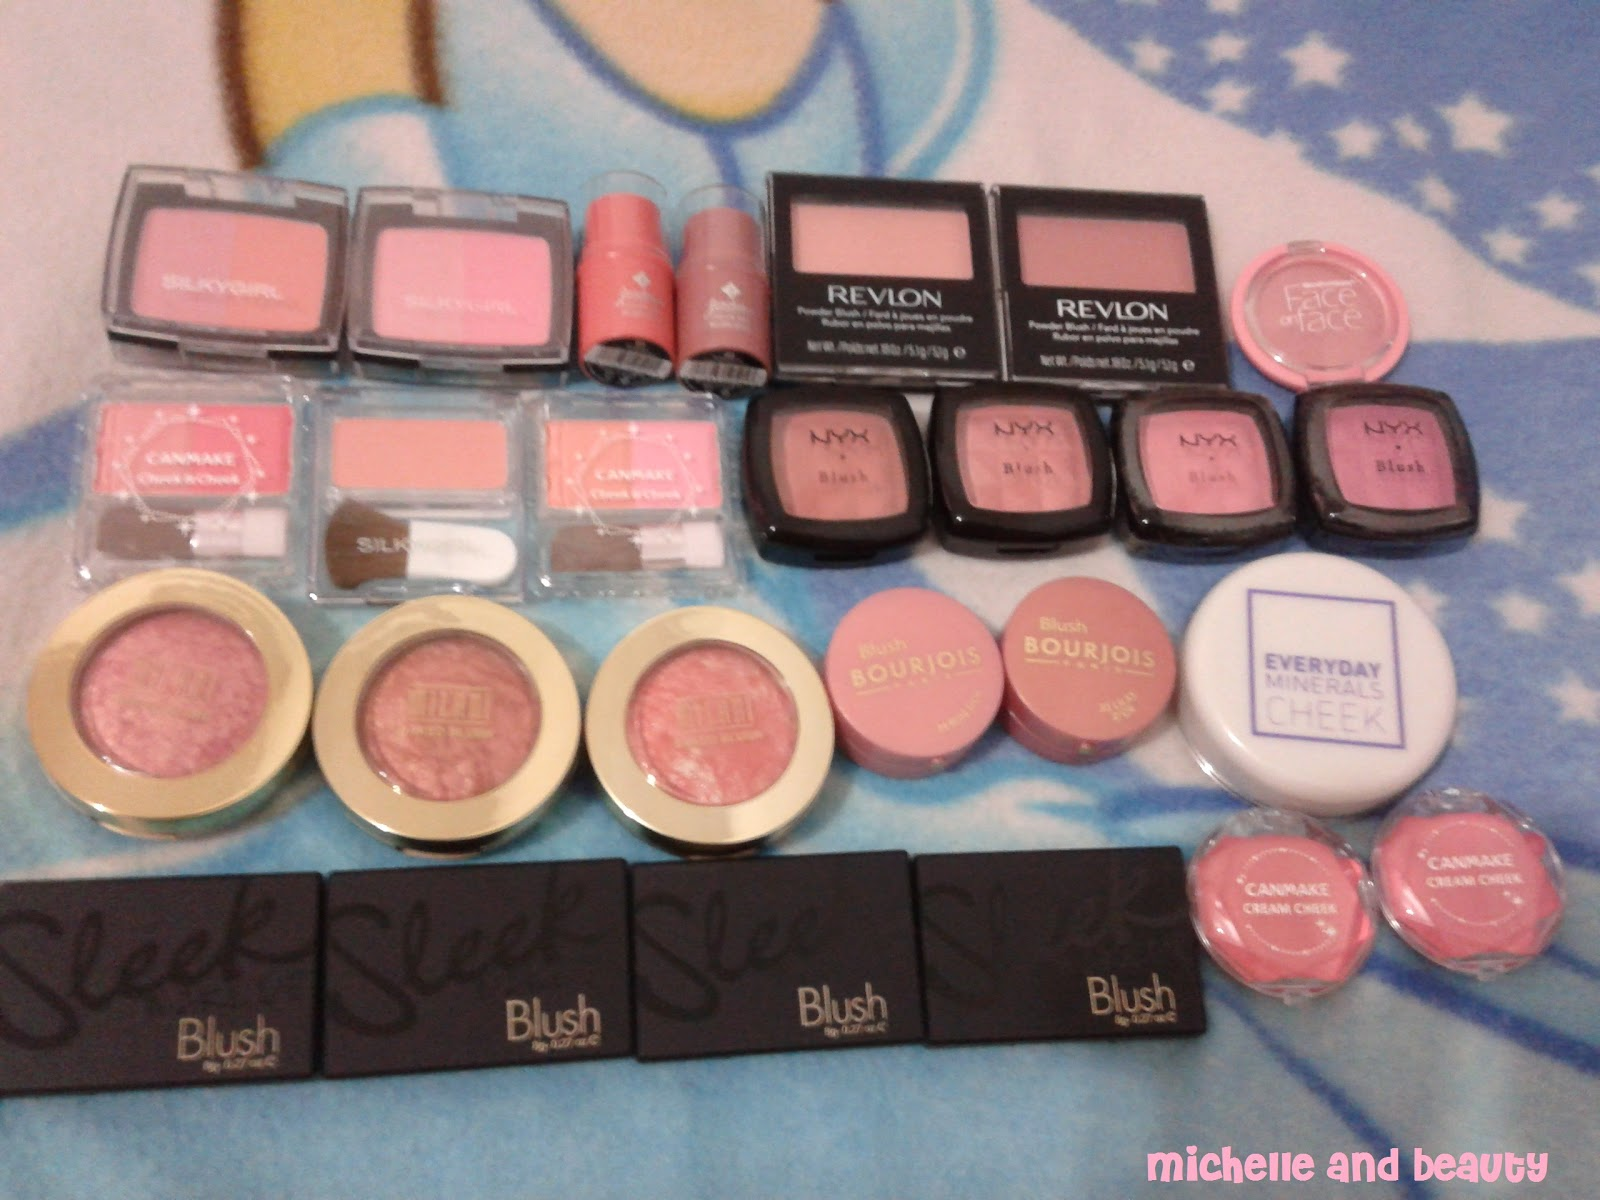 Michelle And Beauty R 02 Pixy Moisture Lipstick 38gr So These Are The Blushes That I Have Right Now Excluding My First Blush When Was On High School In 01 Pink Flowers Discontinued